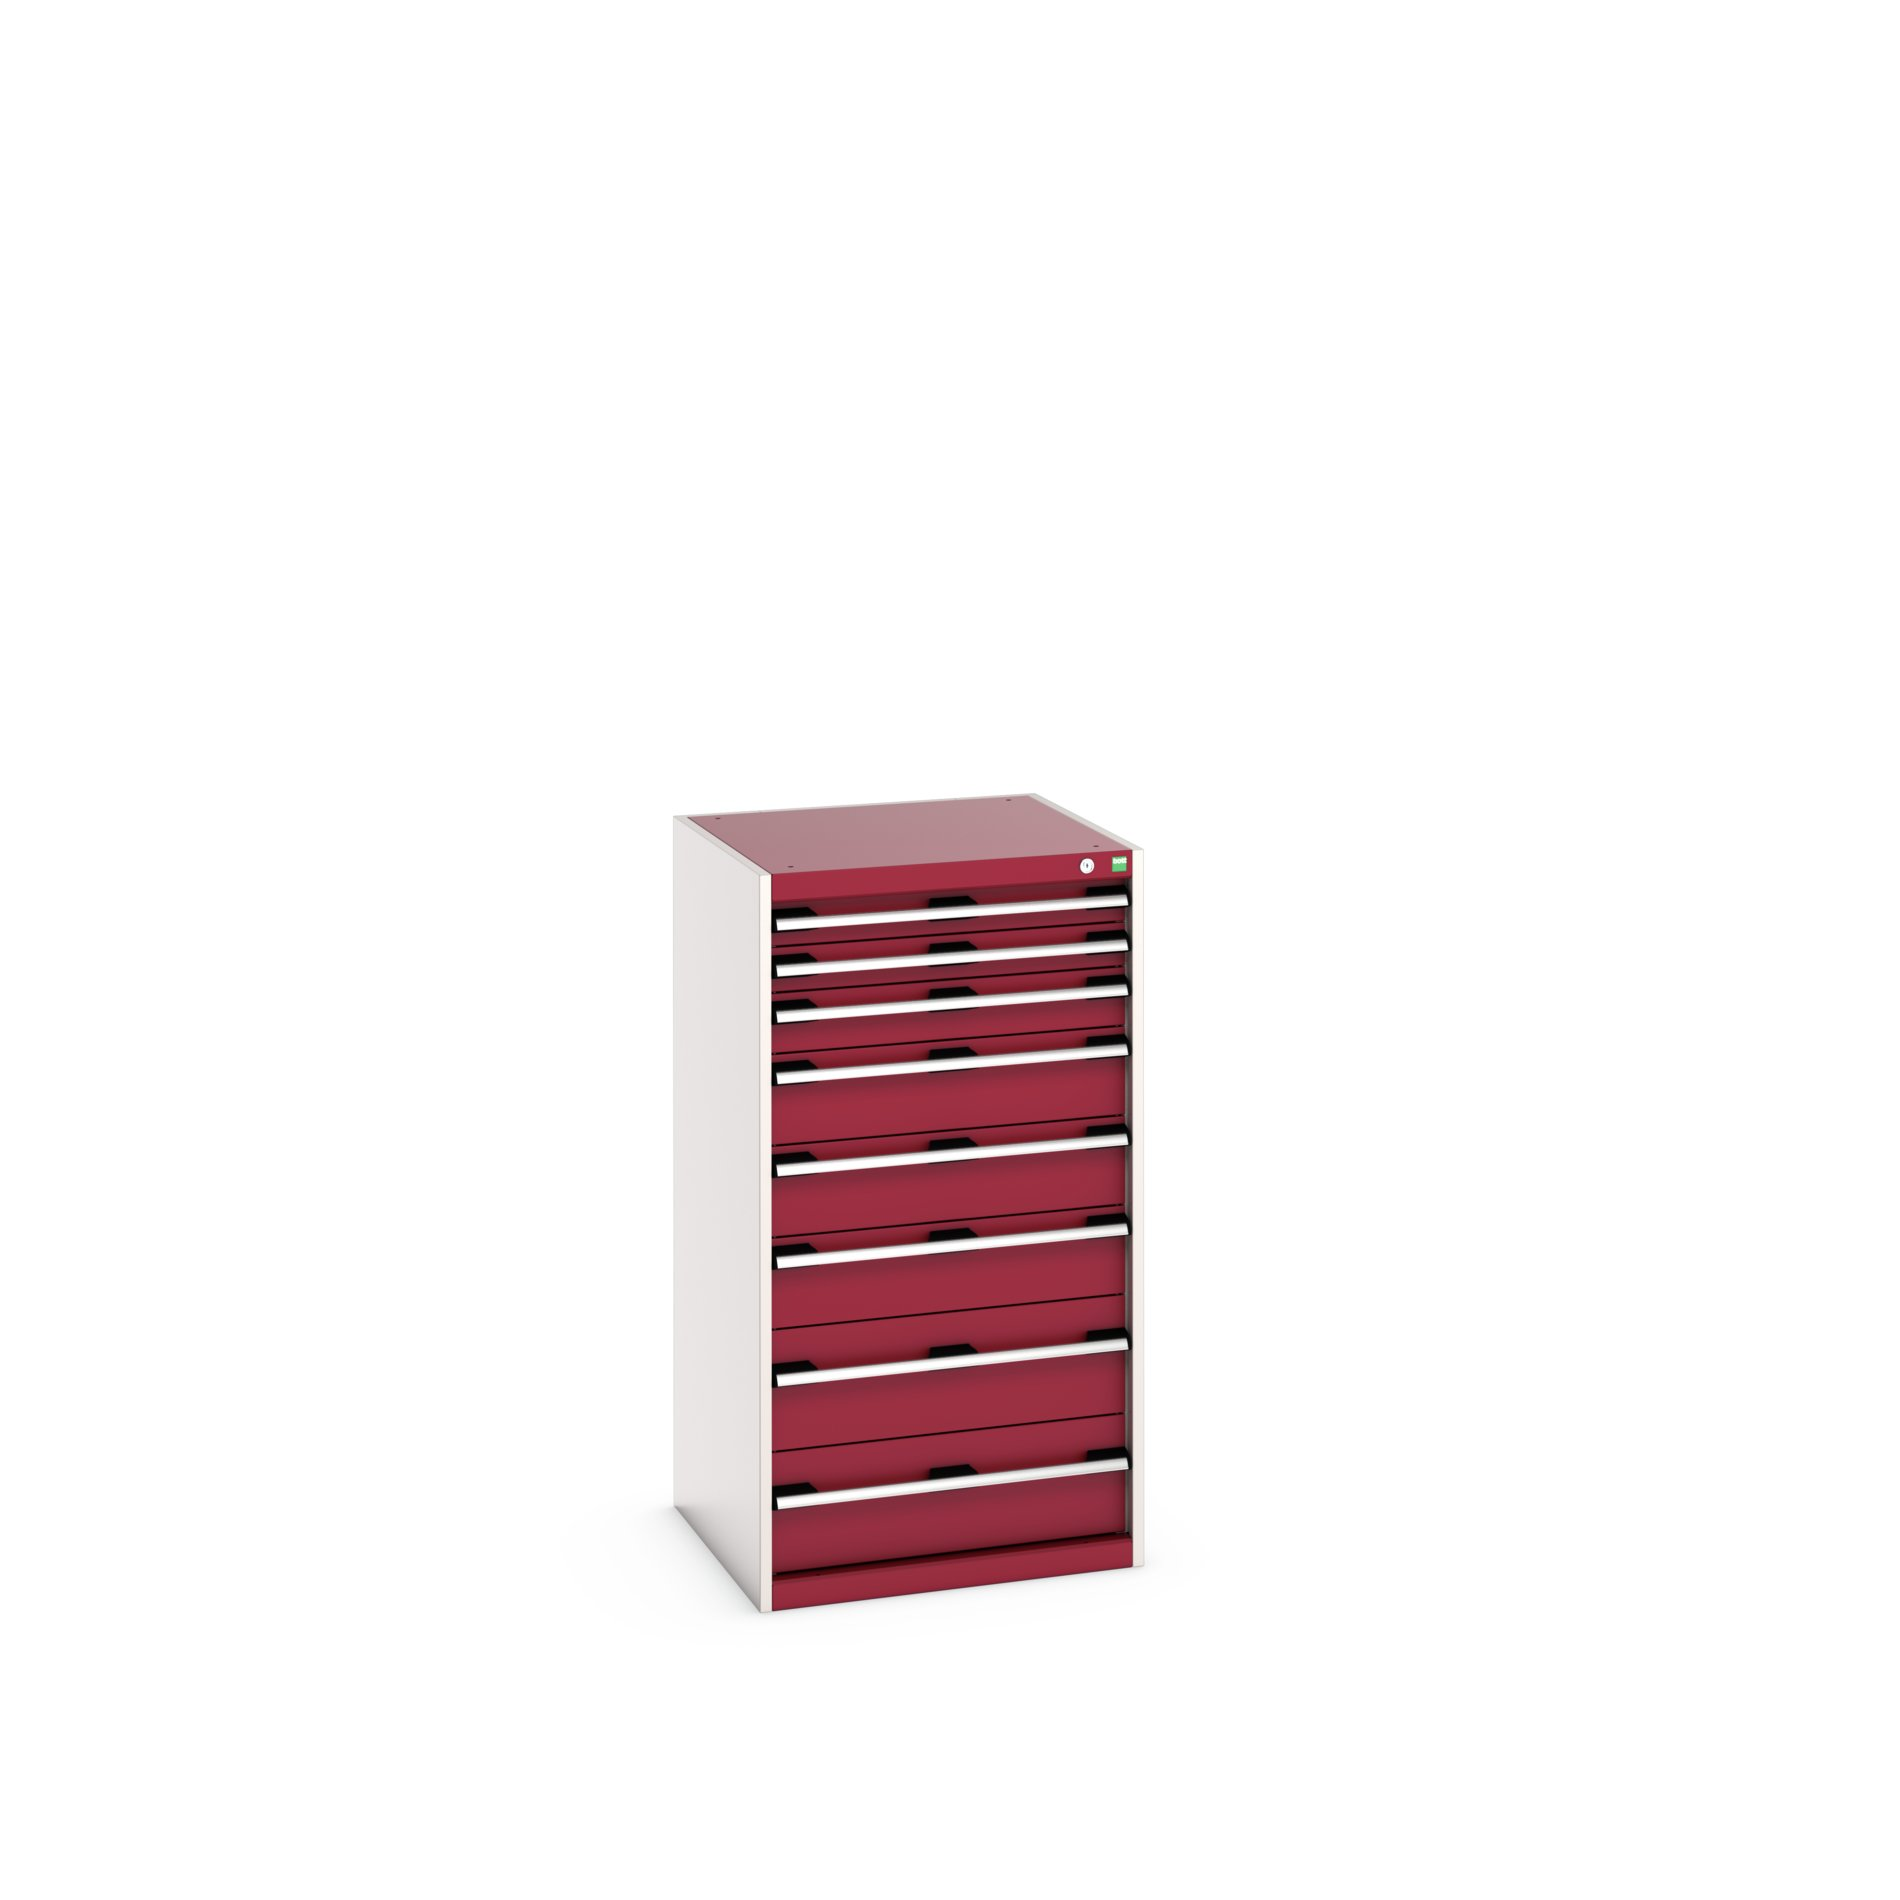 Bott Cubio Drawer Cabinet With 8 Drawers